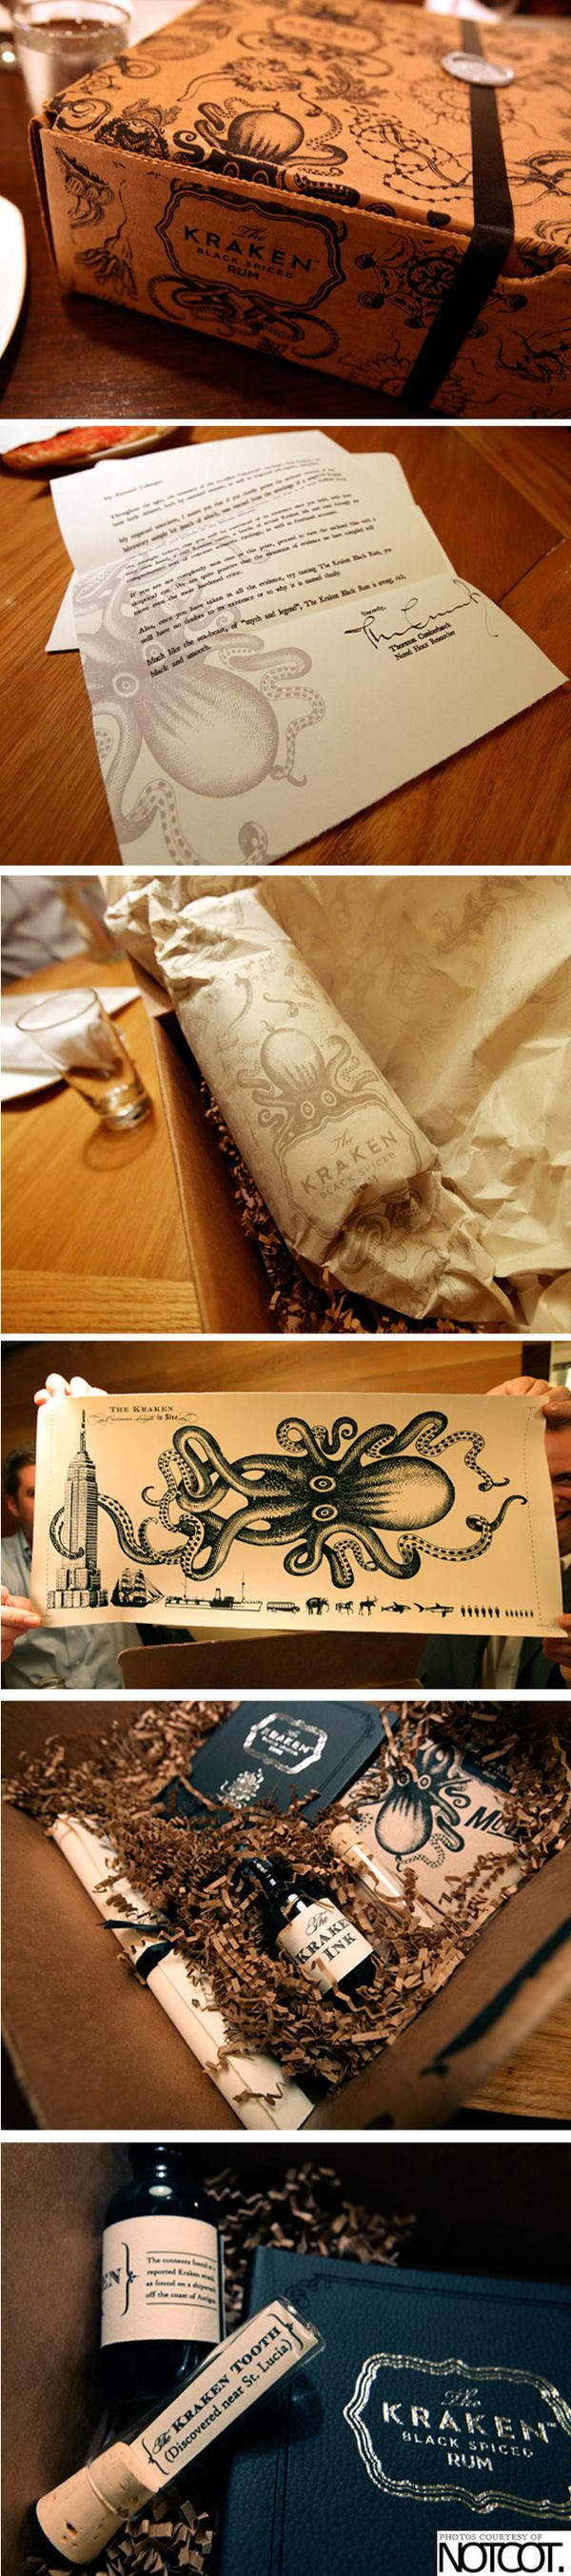 Kraken dark rum - awesome packaging for this press release kit by Charmaine Choi (via Behance)